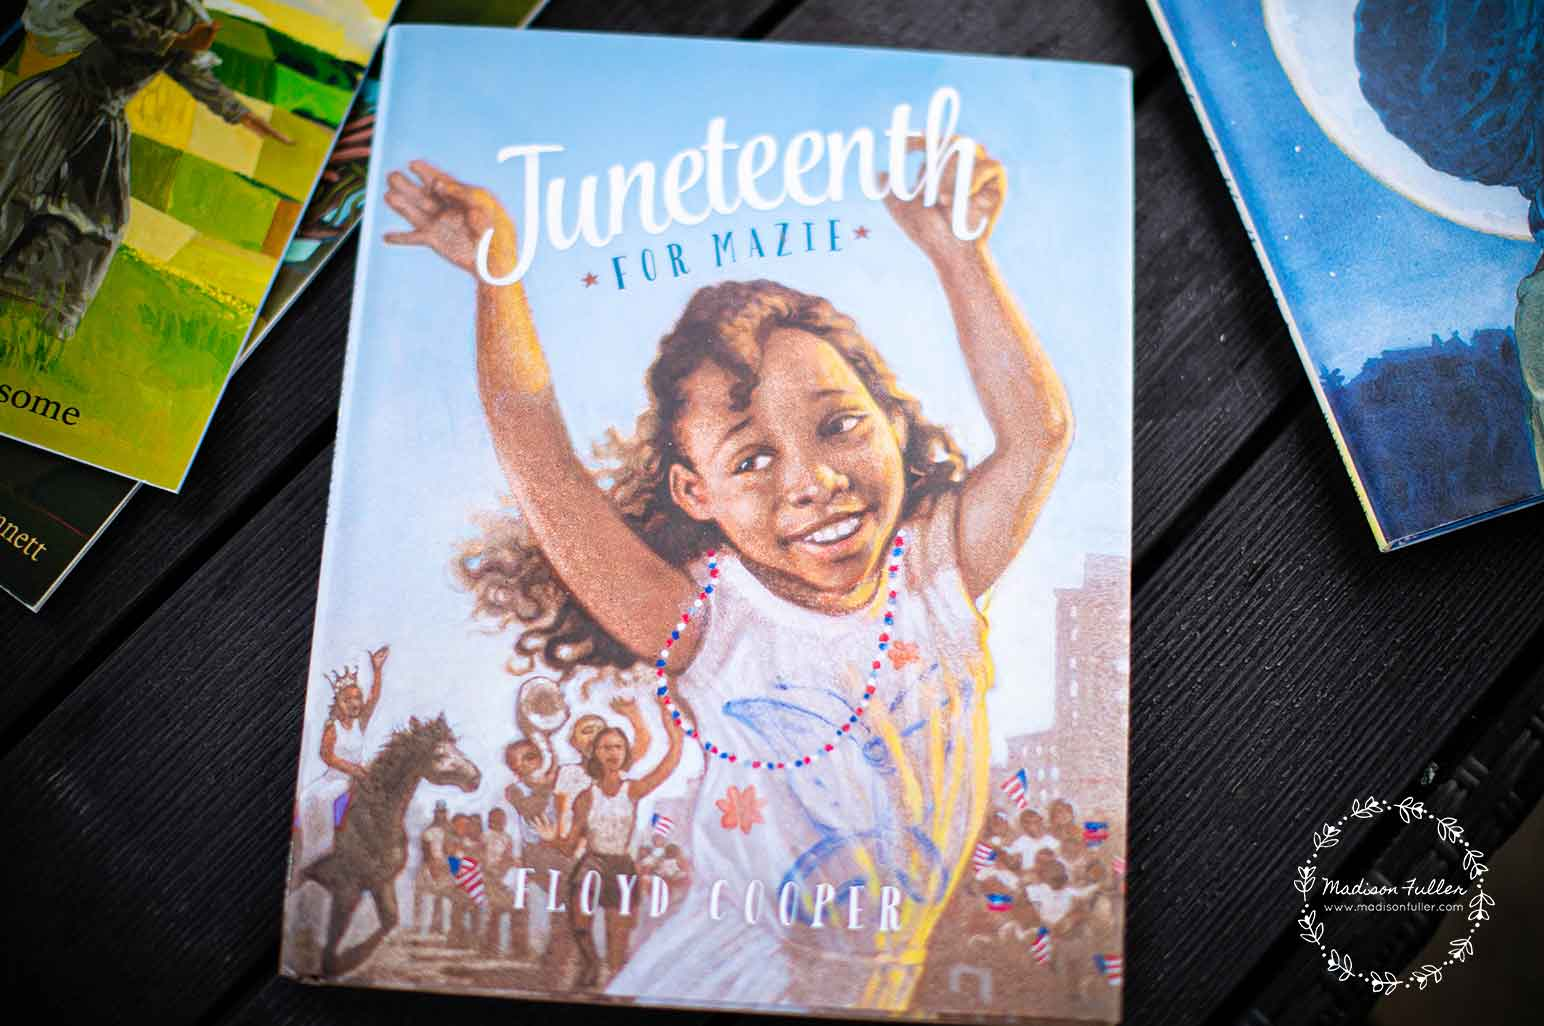 Juneteenth Books for Kids - Juneteenth for Mazie